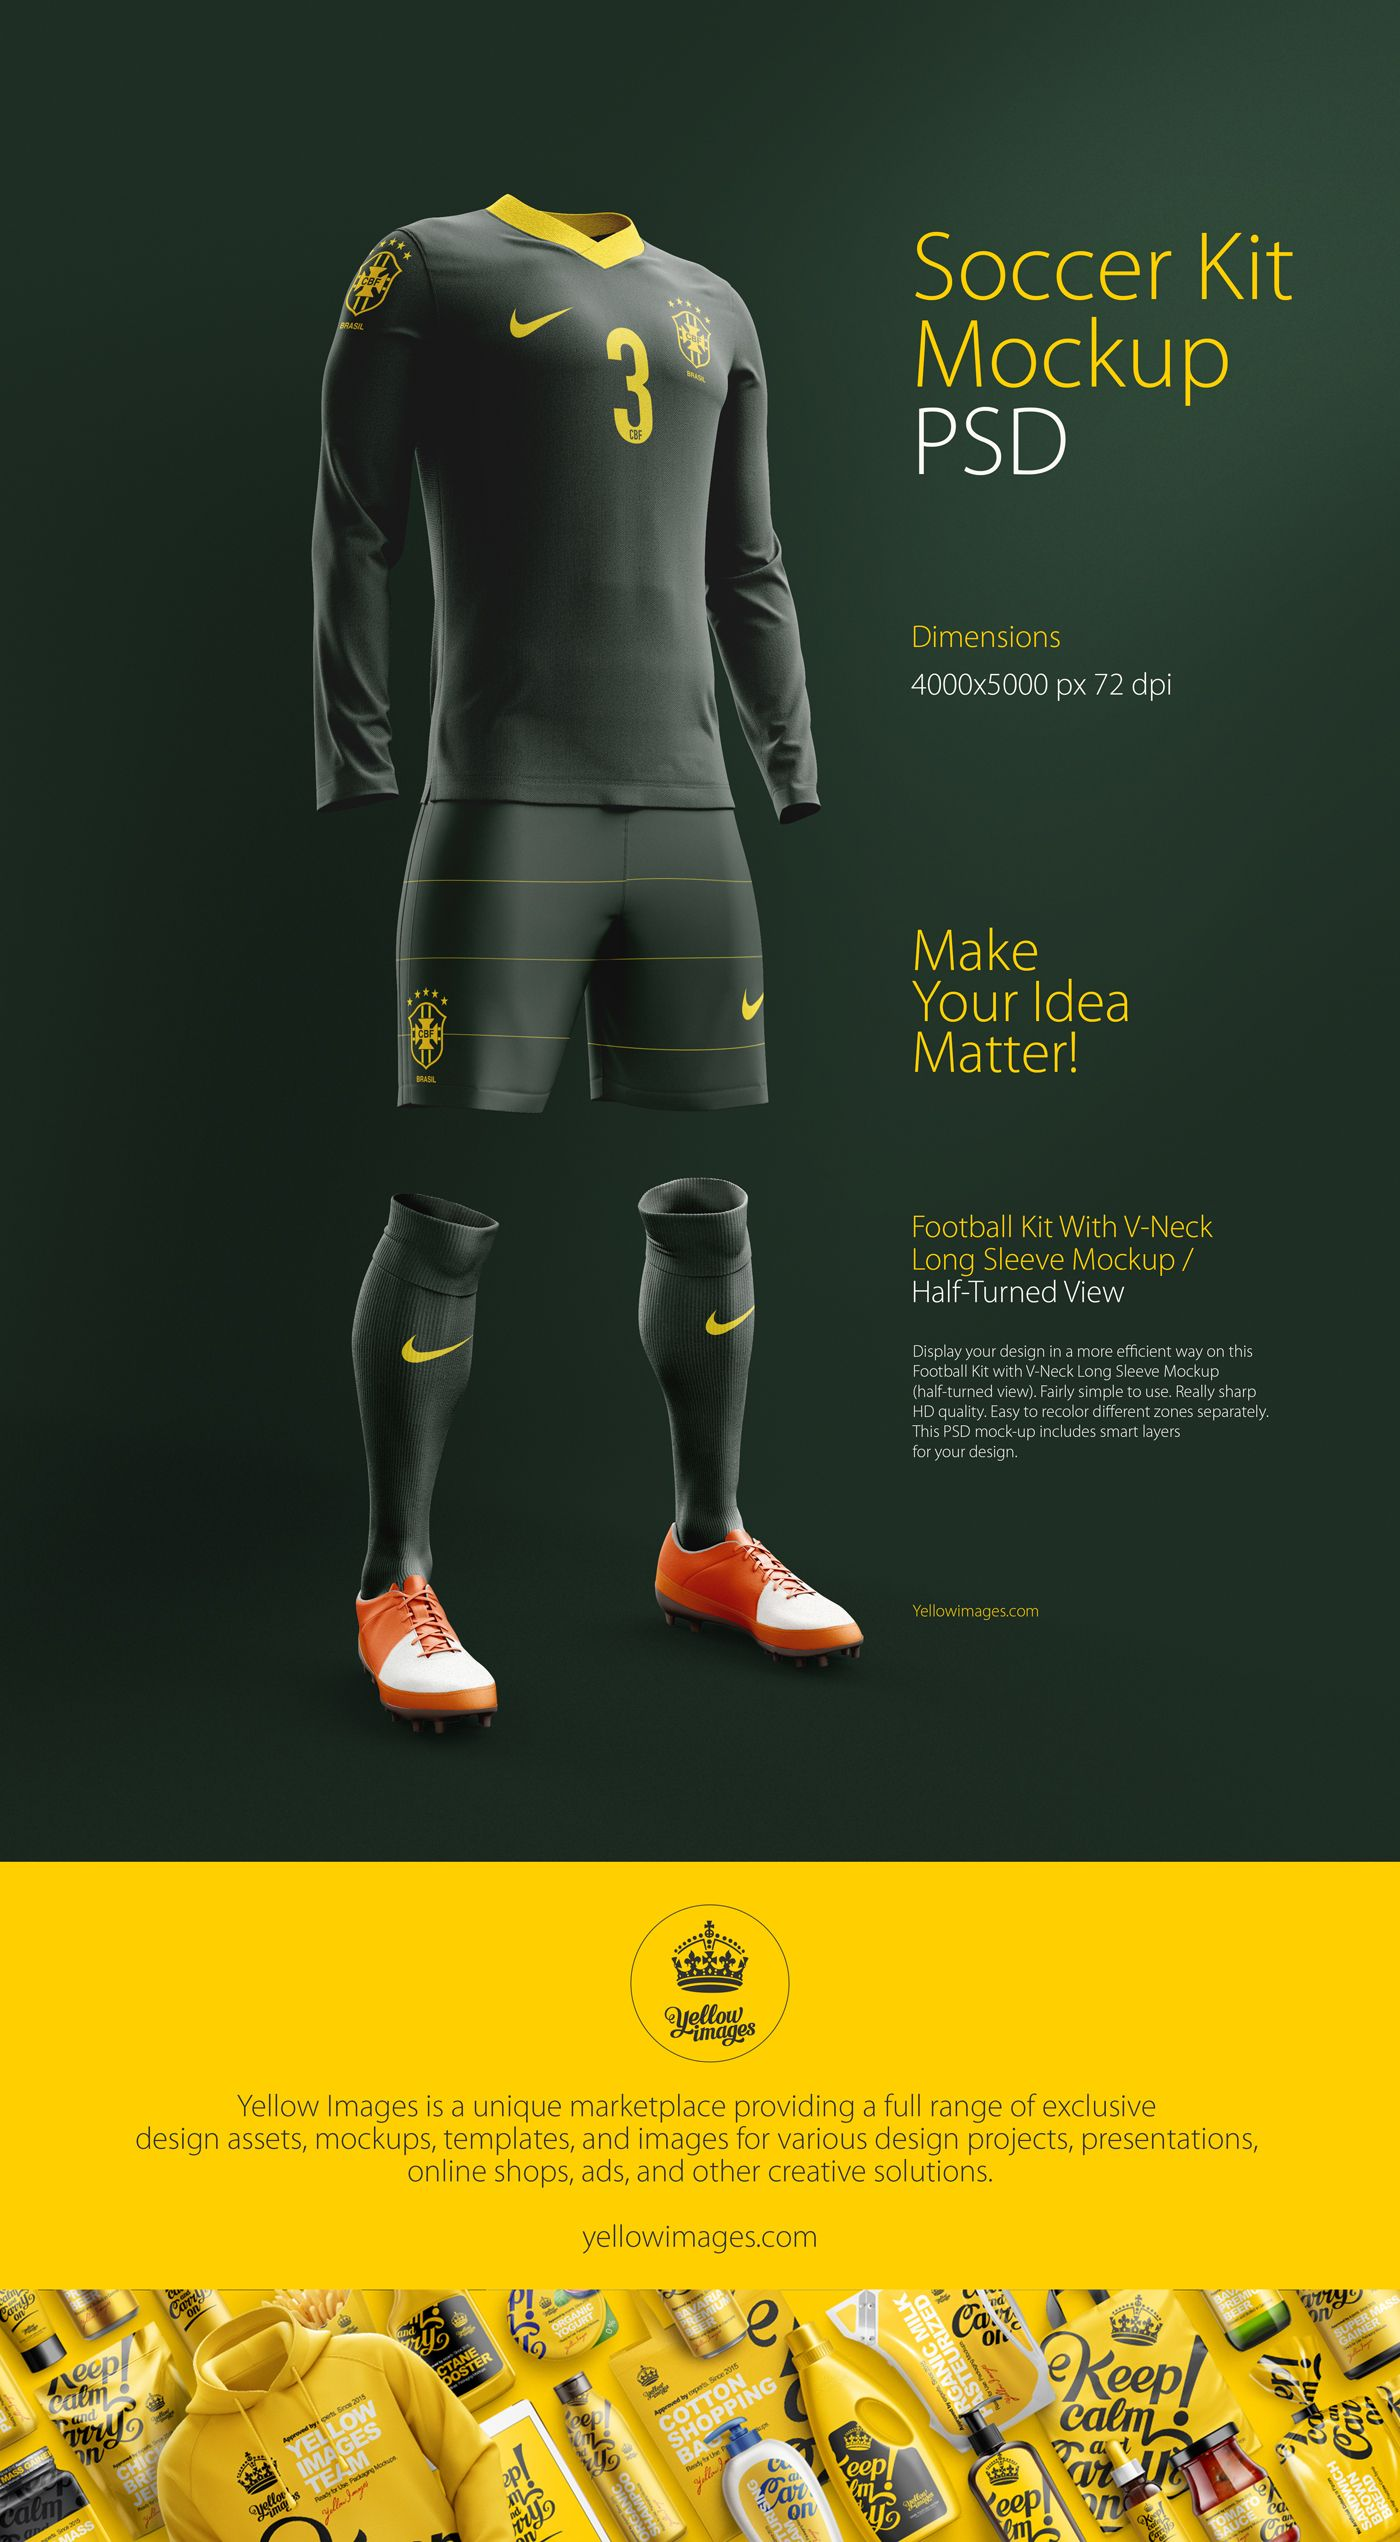 Download About Yellow Imagesyellow Images Is A Unique Marketplace Providing A Full Range Of Exclusive Design Assets Mockups Templates Soccer Kits Football Kits Soccer